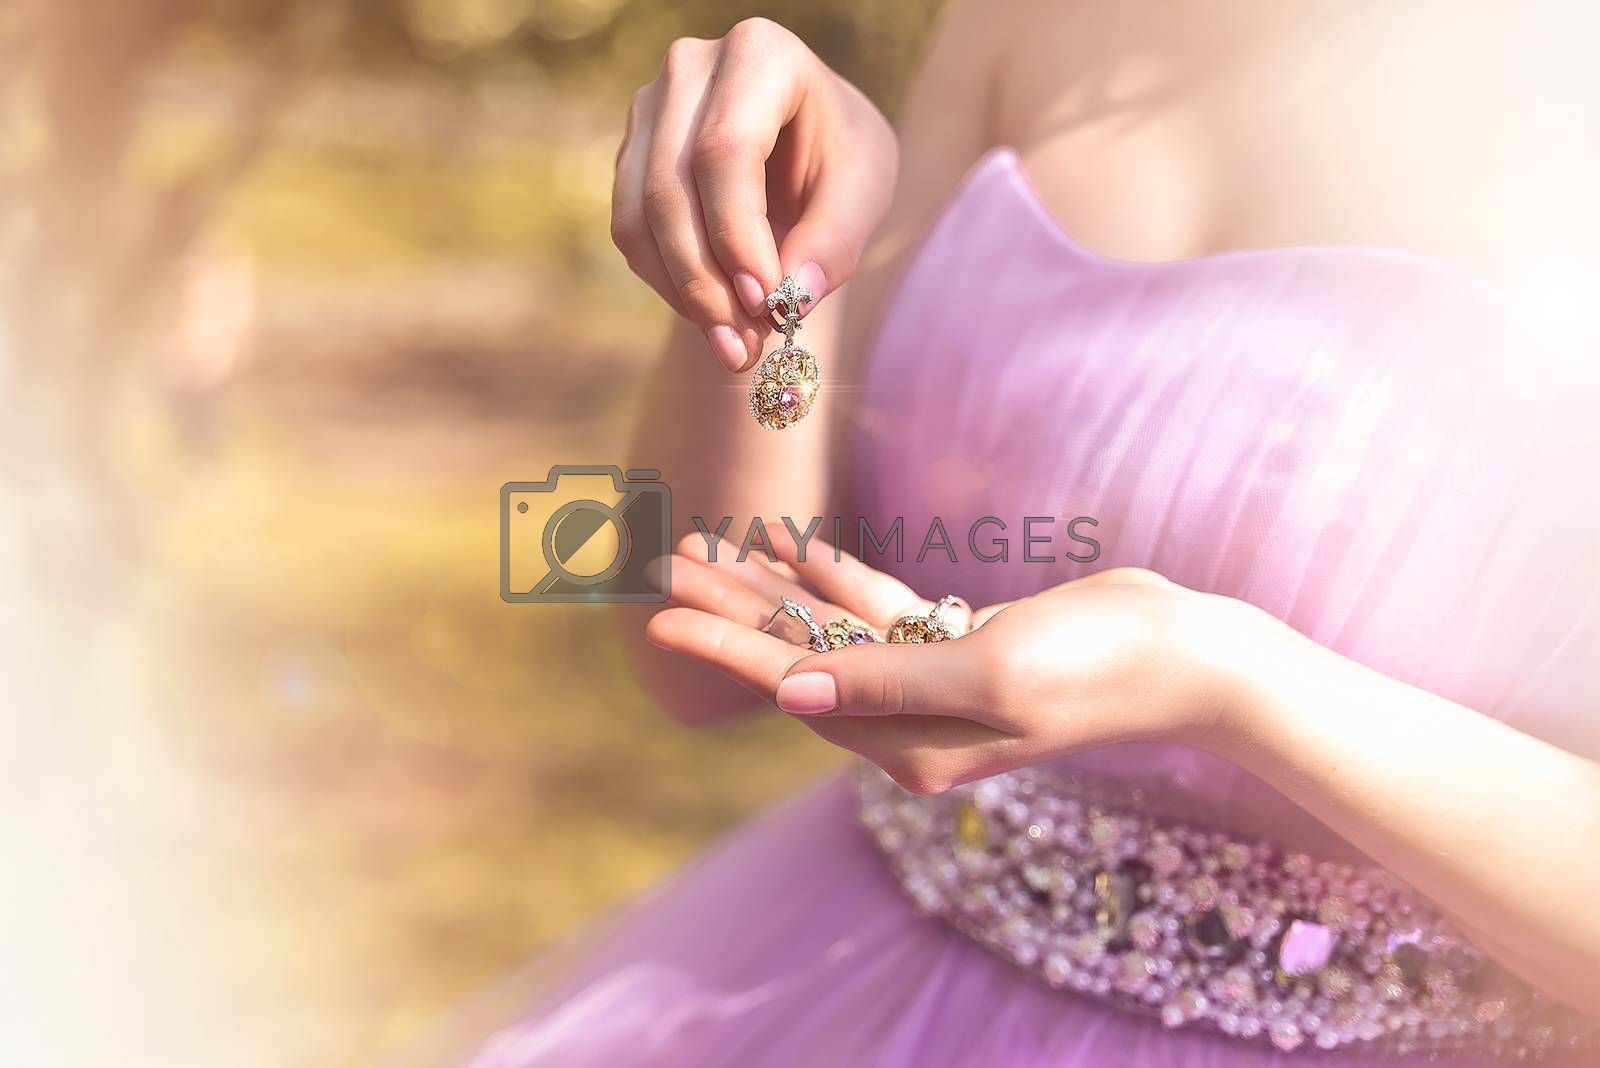 Wedding jewels in female hands close-up. vintage dress. nature. fashion. by Nickstock